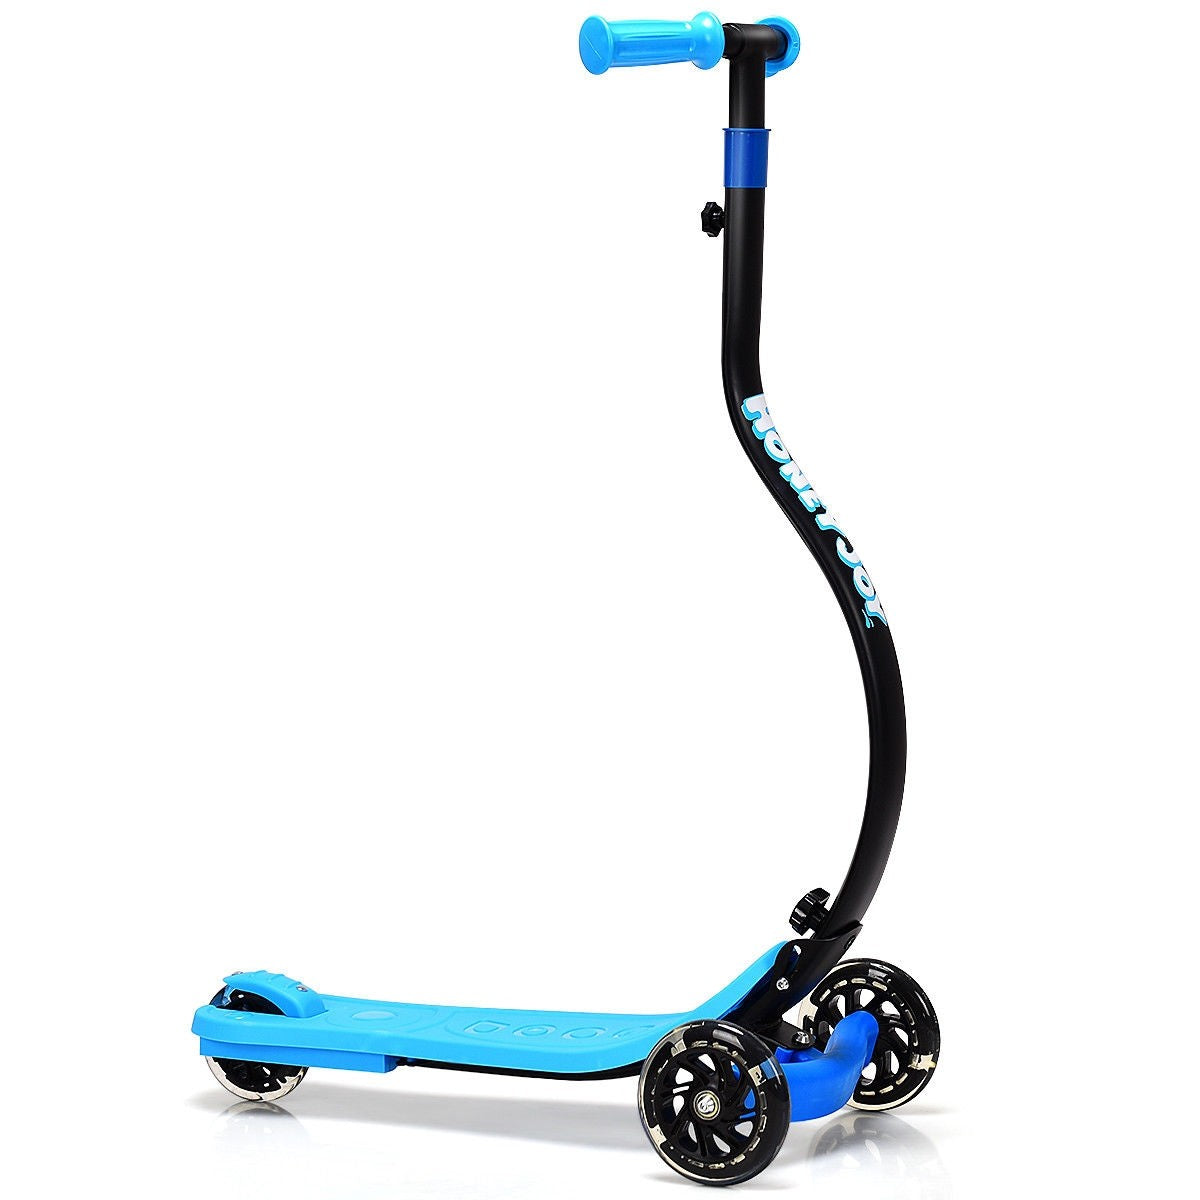 Folding Kids C Shape Anti-Collision Adjustable Kick Scooter -Blue